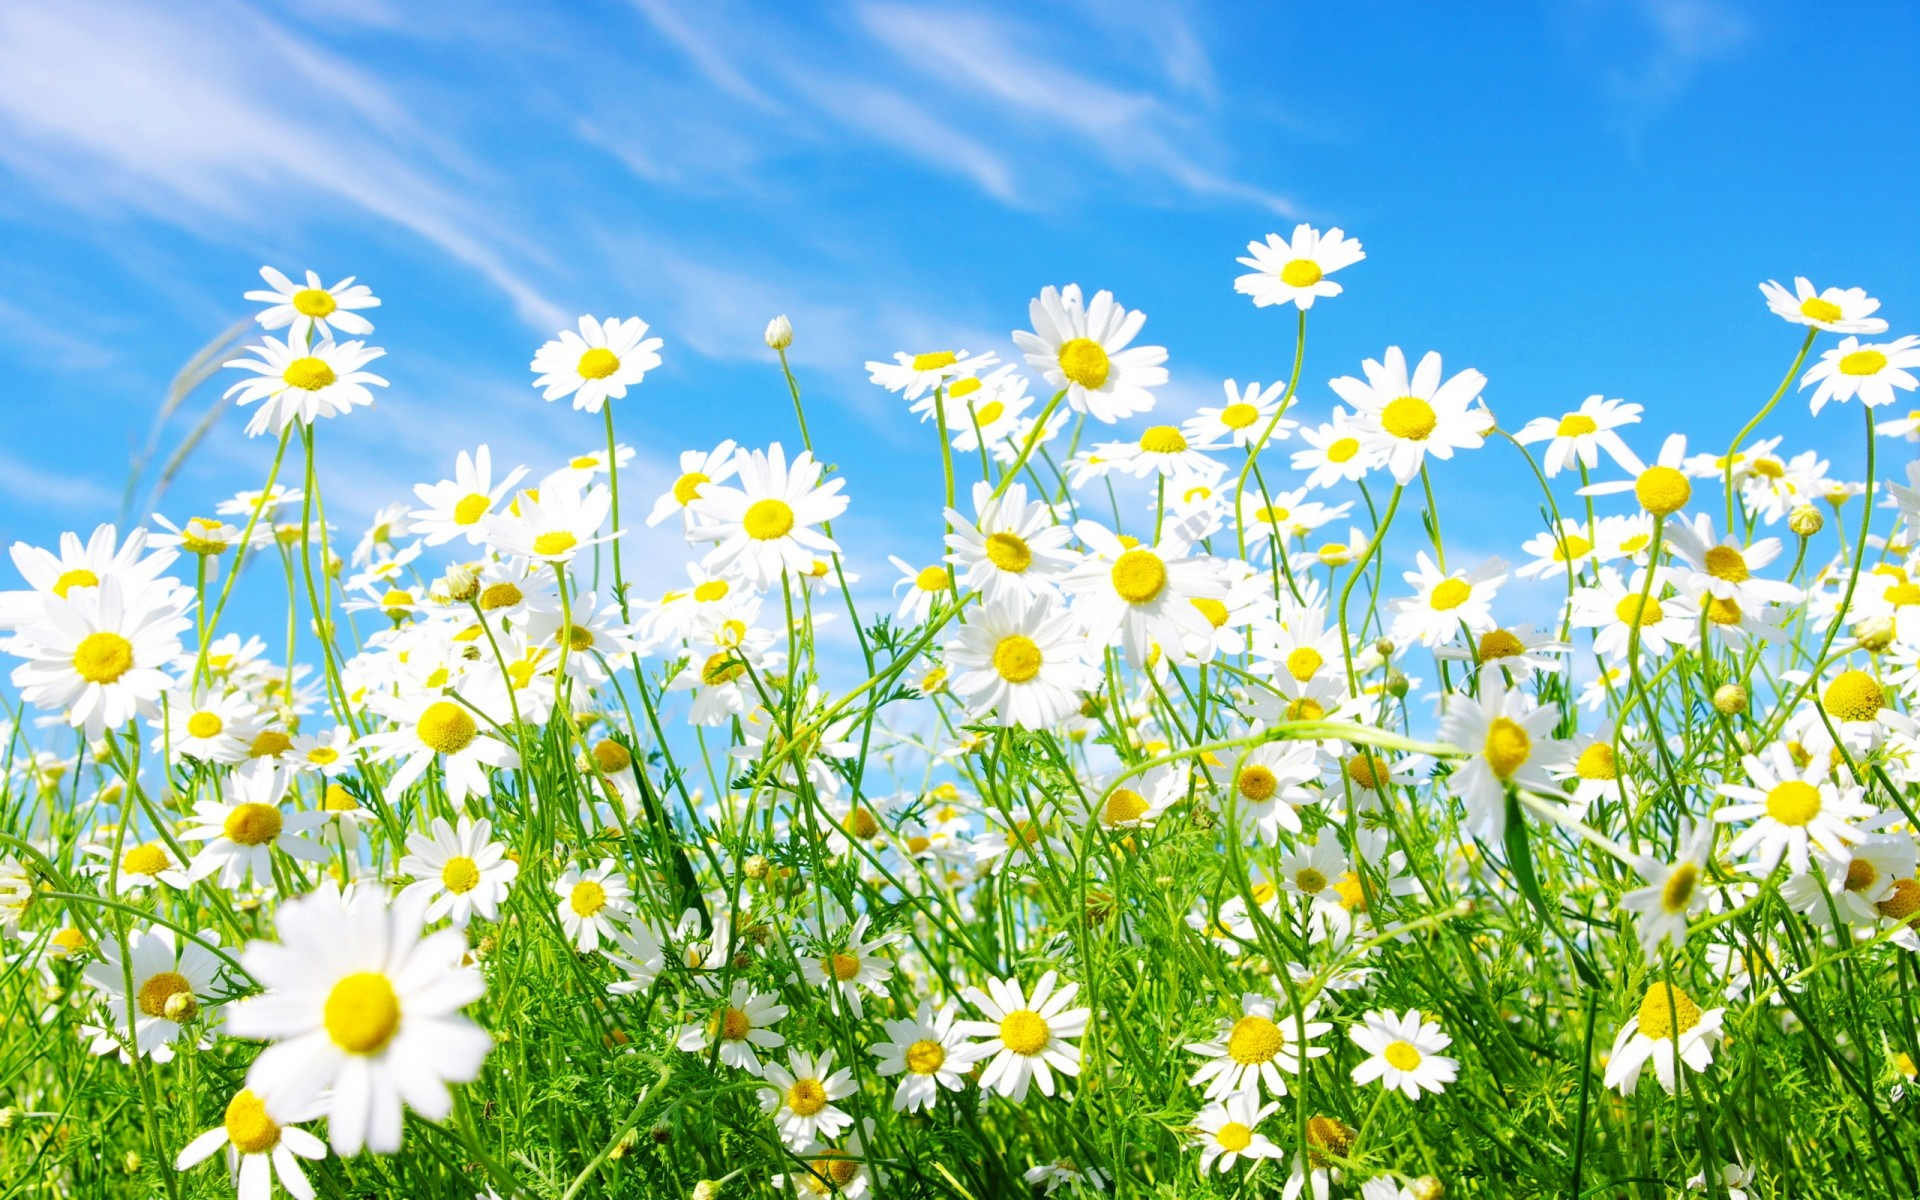 flowers field flower hayfield summer nature flora chamomile growth grass fair weather petal sunny rural sun season floral blooming outdoors bright landscape scenery